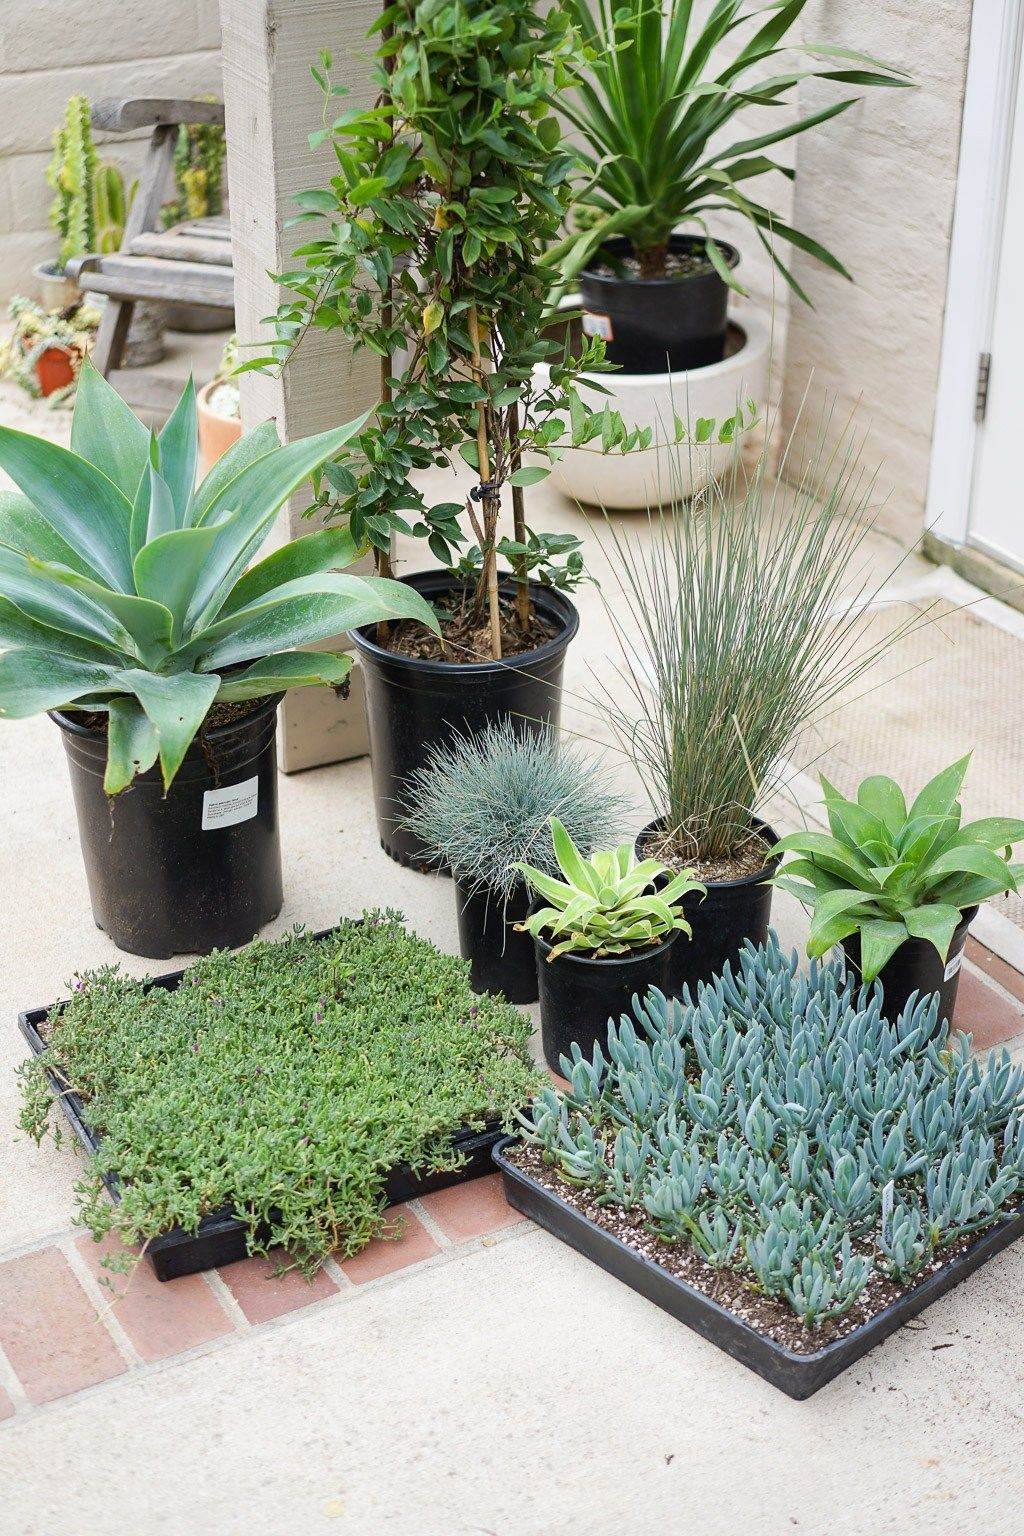 Planting a Raised Garden Bed Plants, Garden beds